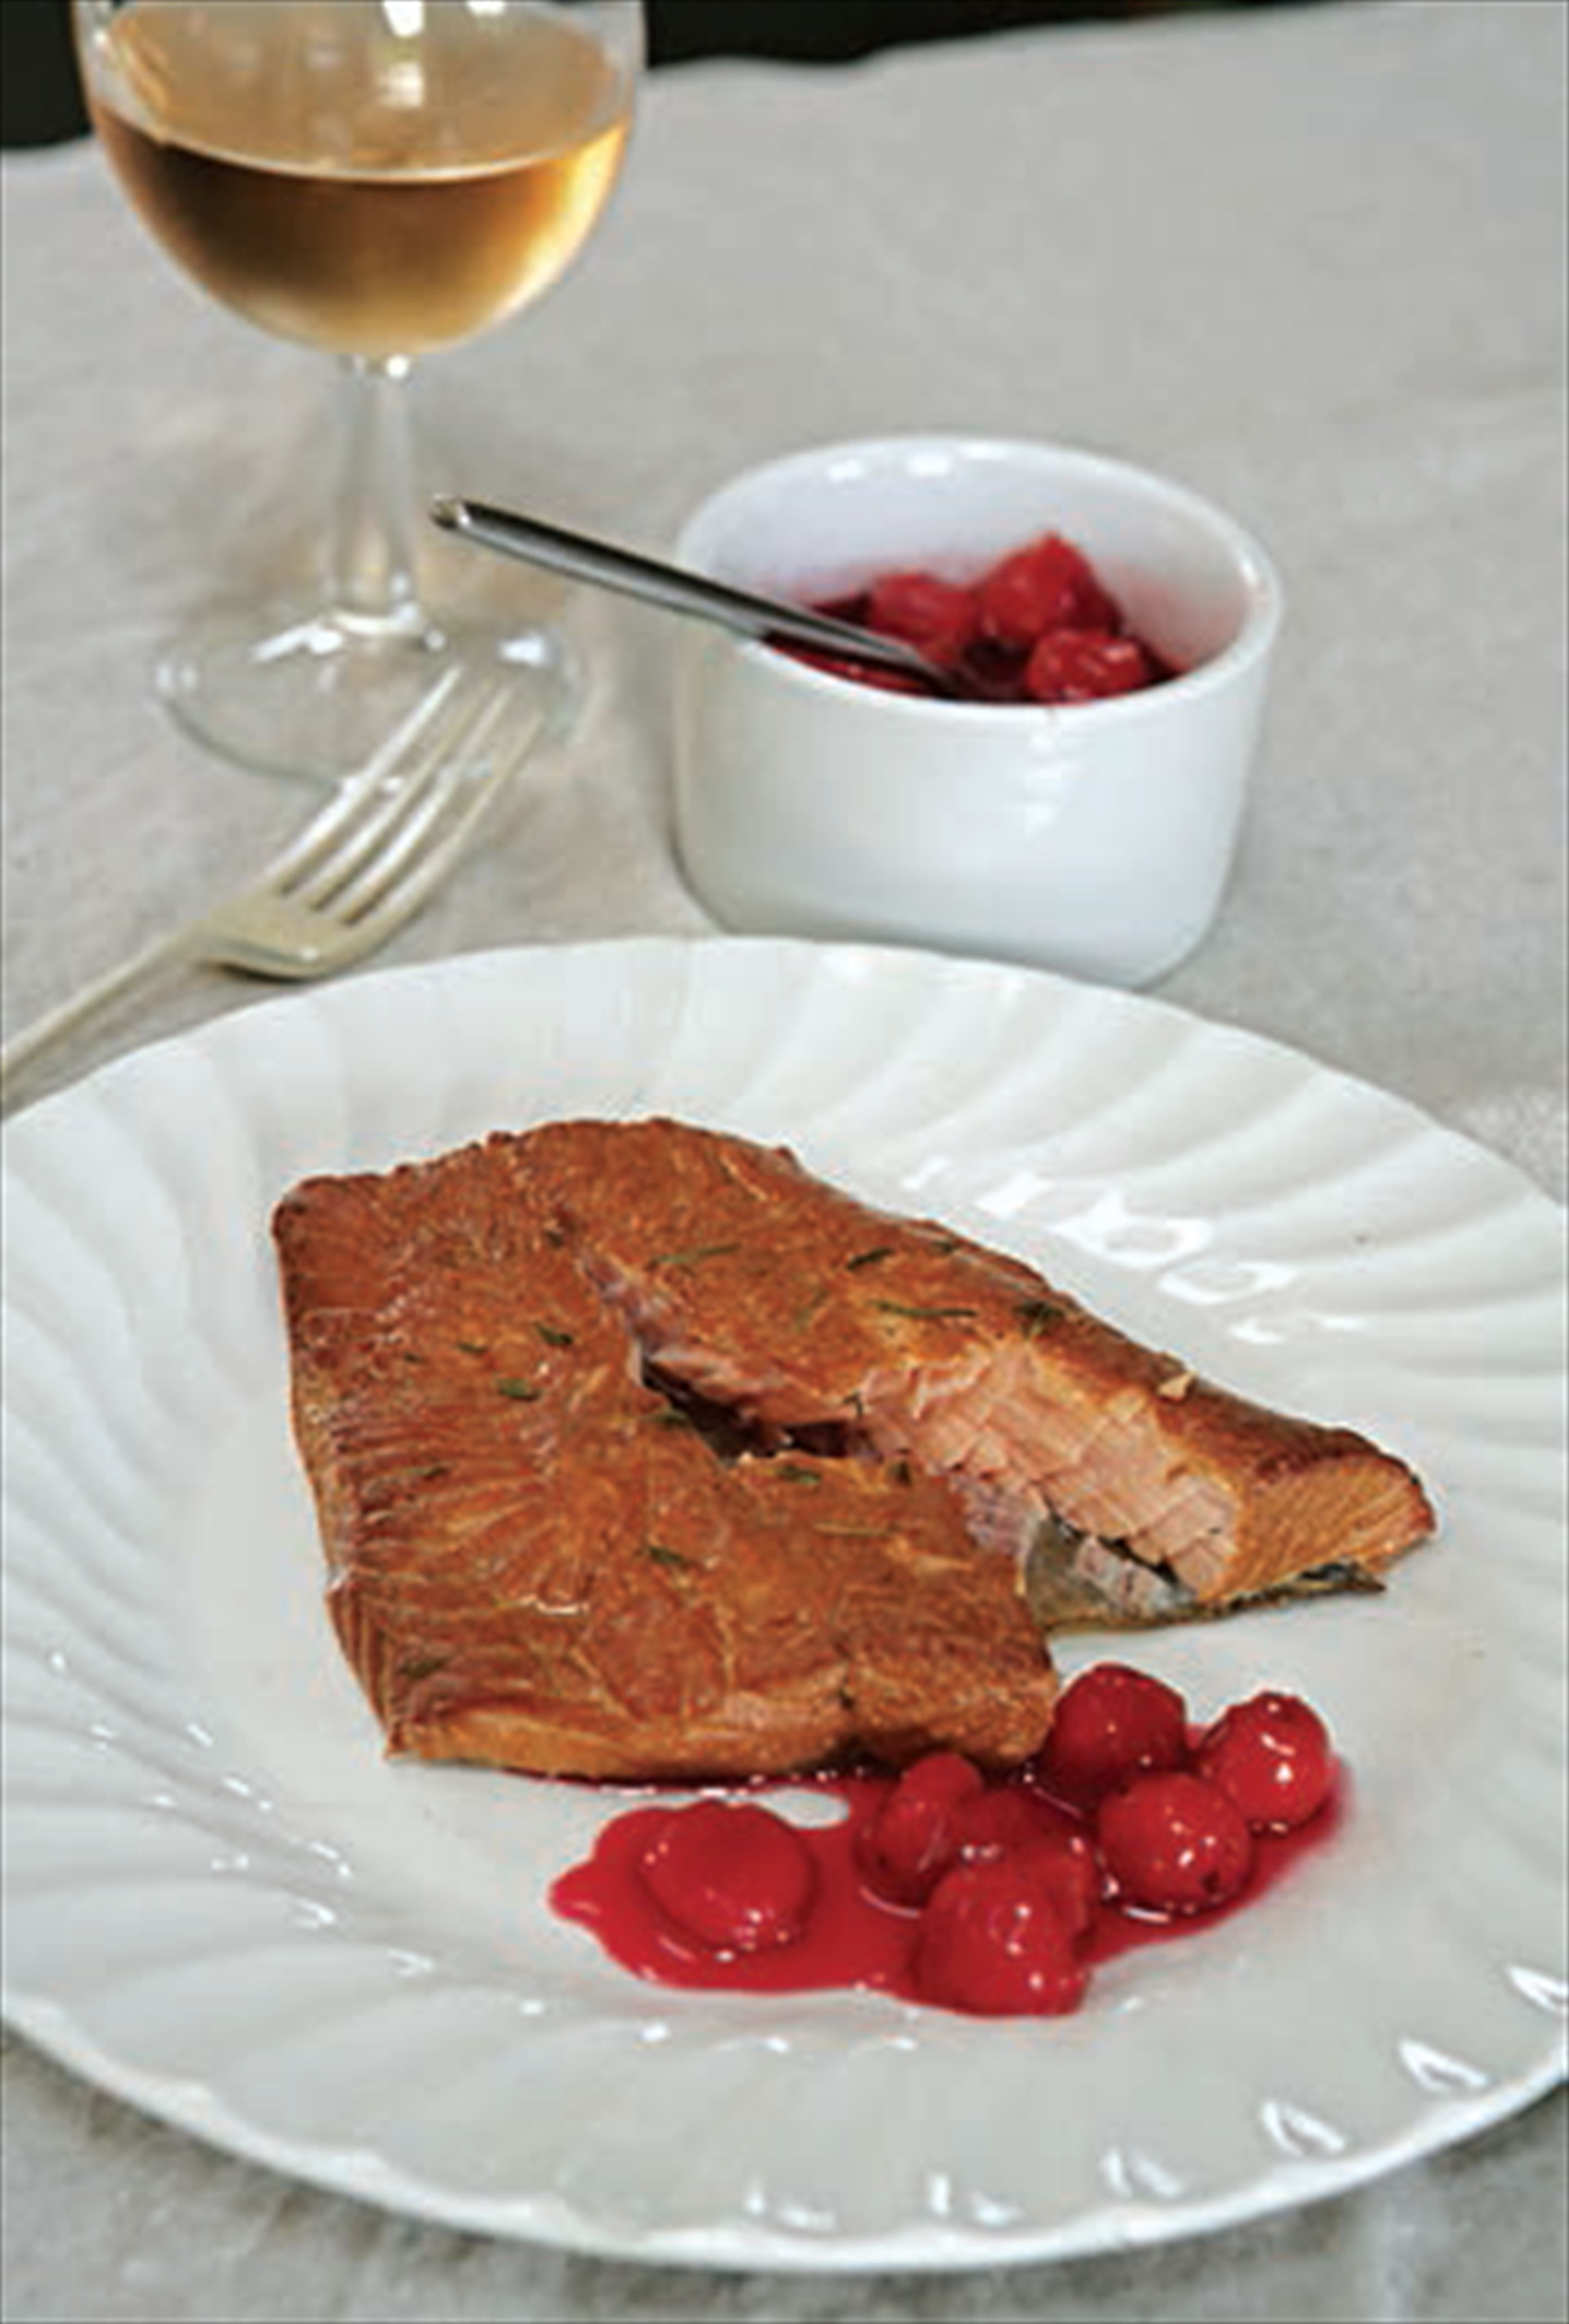 Hot-smoked sea trout with morello cherries